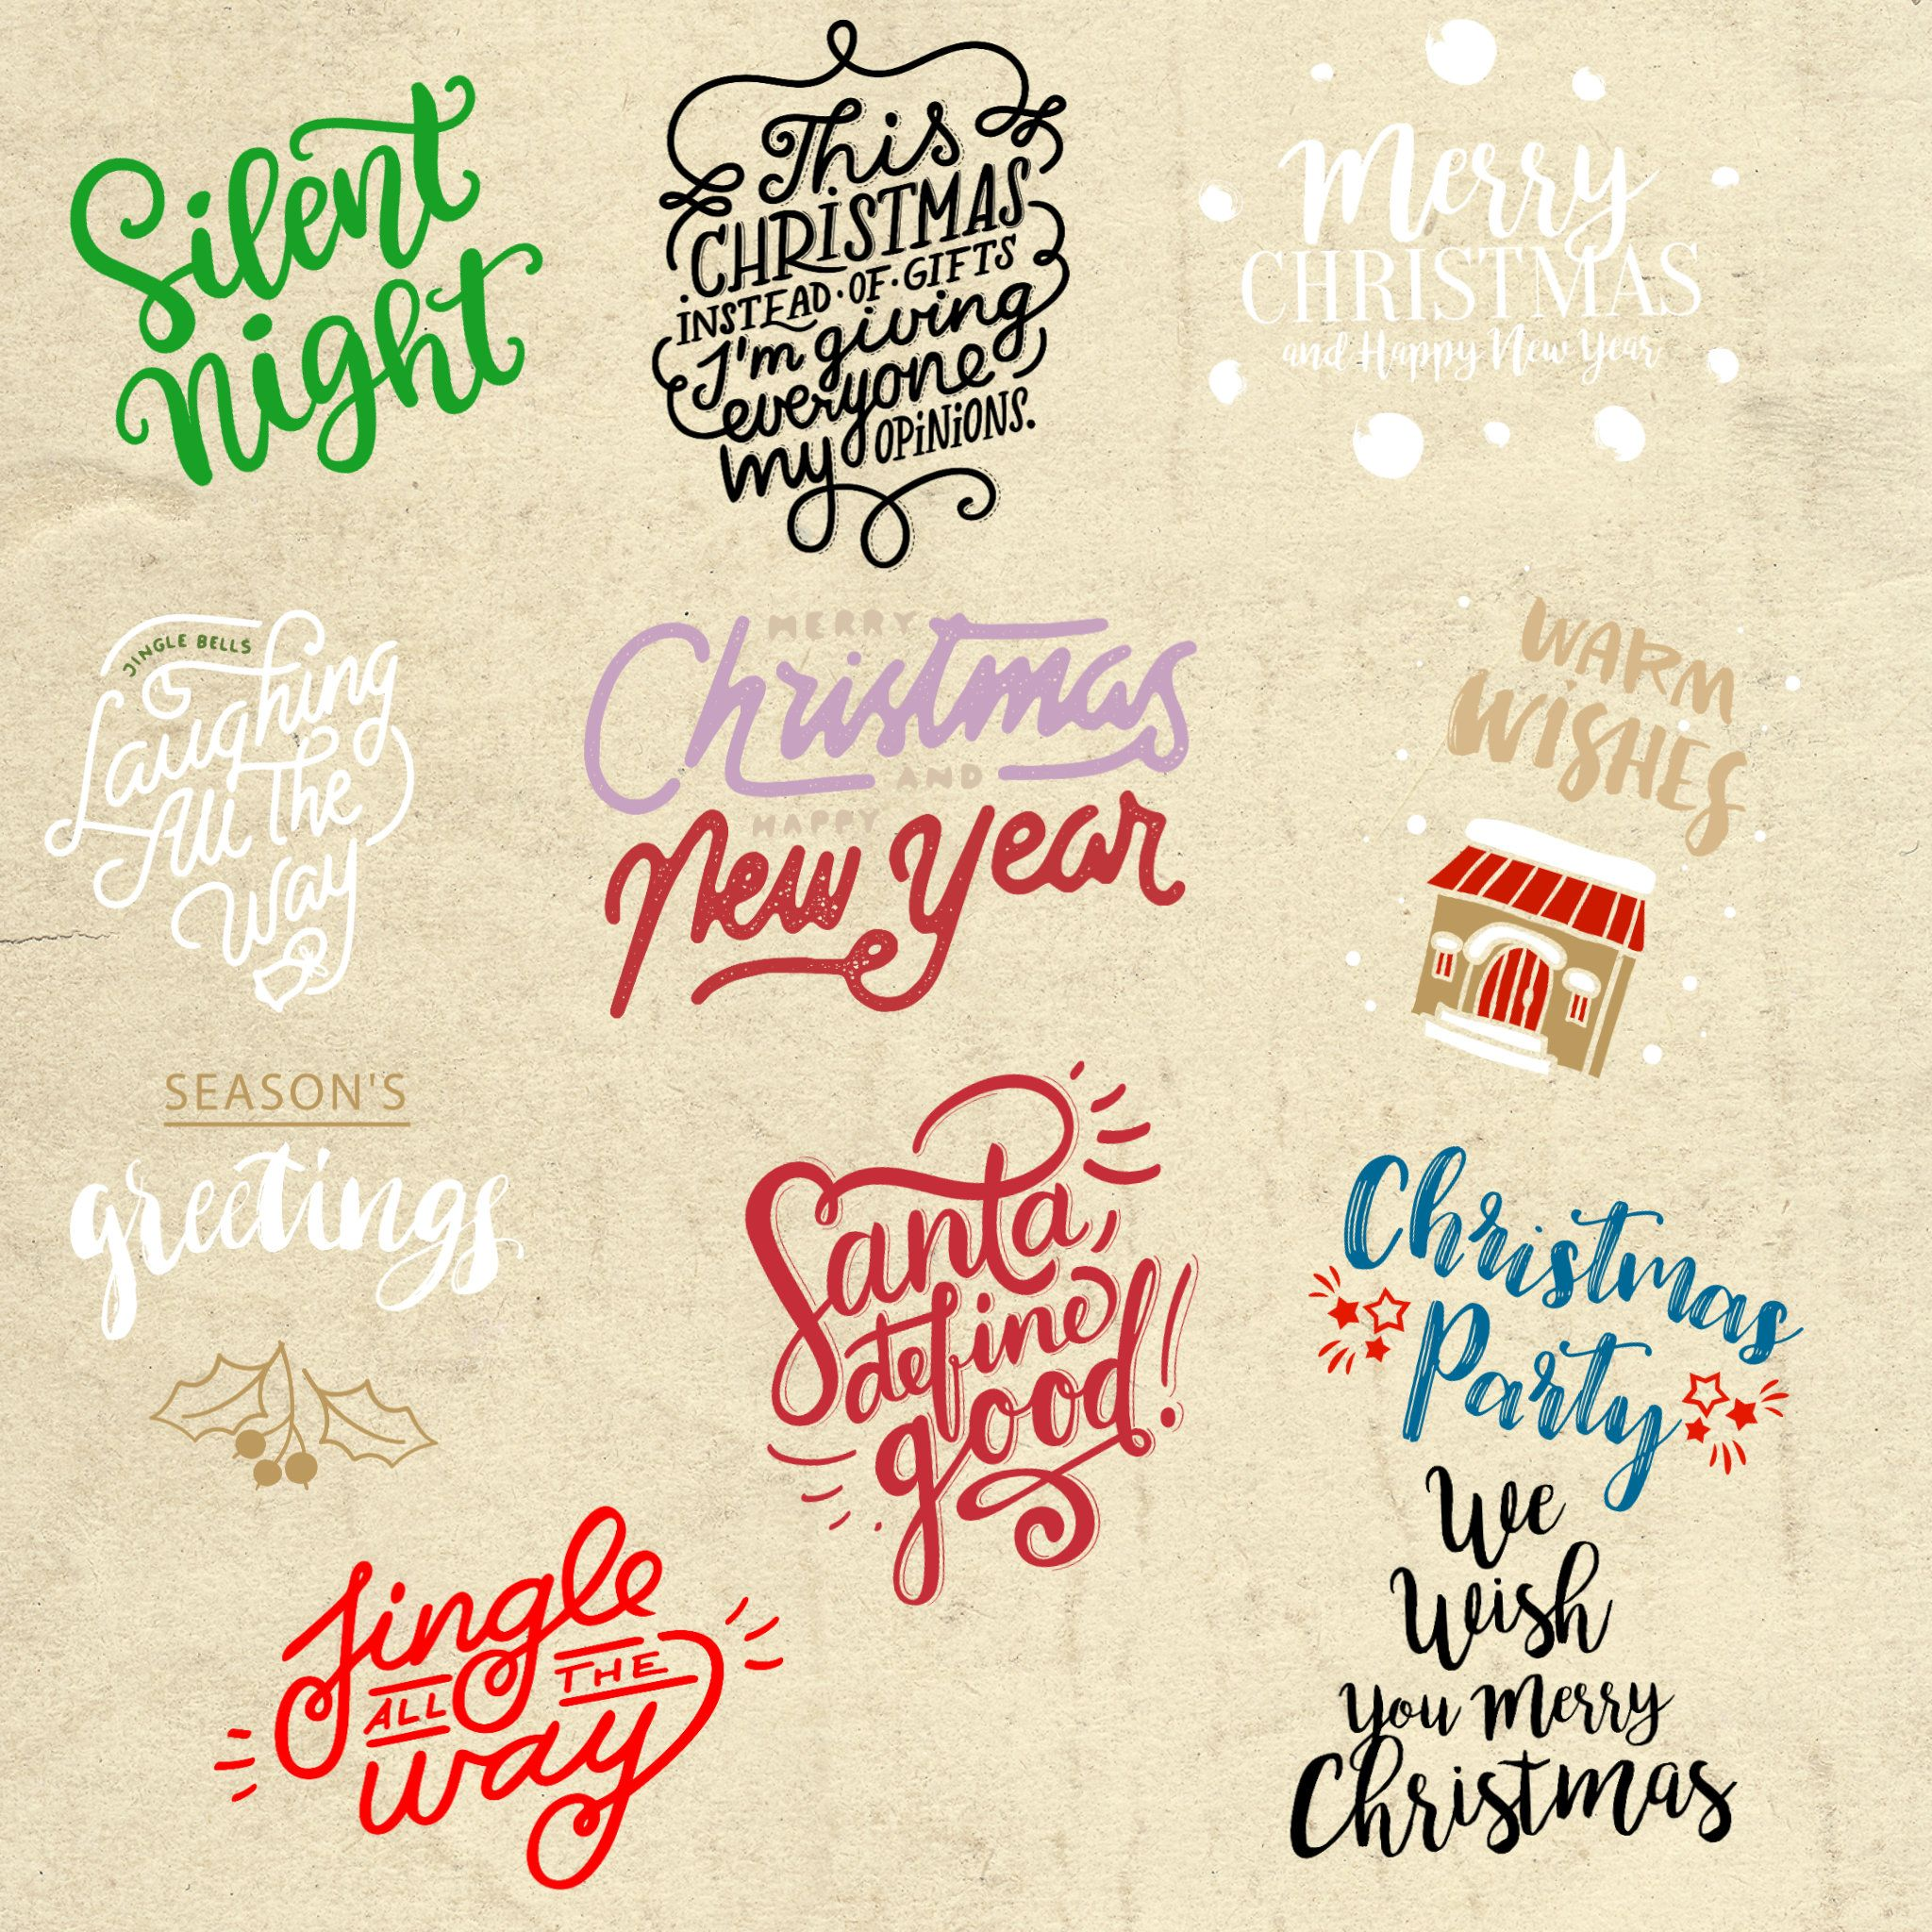 Pin On Christmas Fonts And Designs